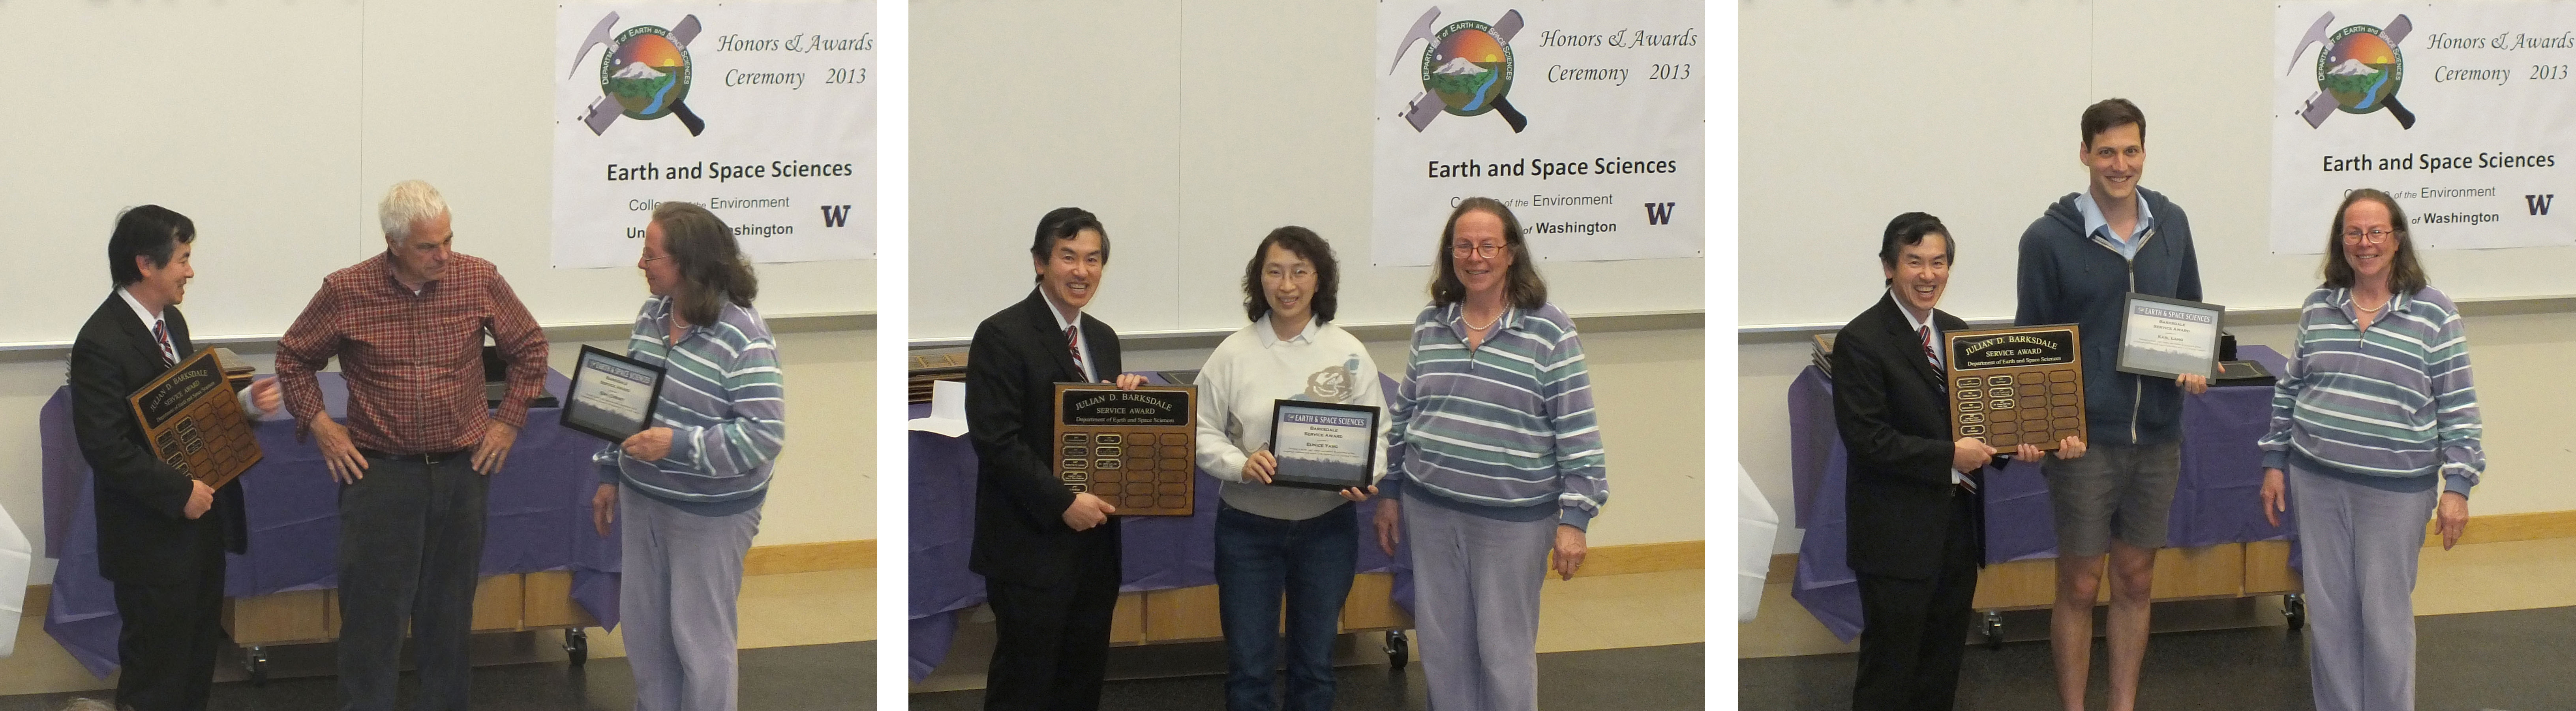 Photo of Eric Cheney, Karl Lang, and Eunice Yang receiving the Barksdale Service Award from Robert Winglee and Wilma Boyd.